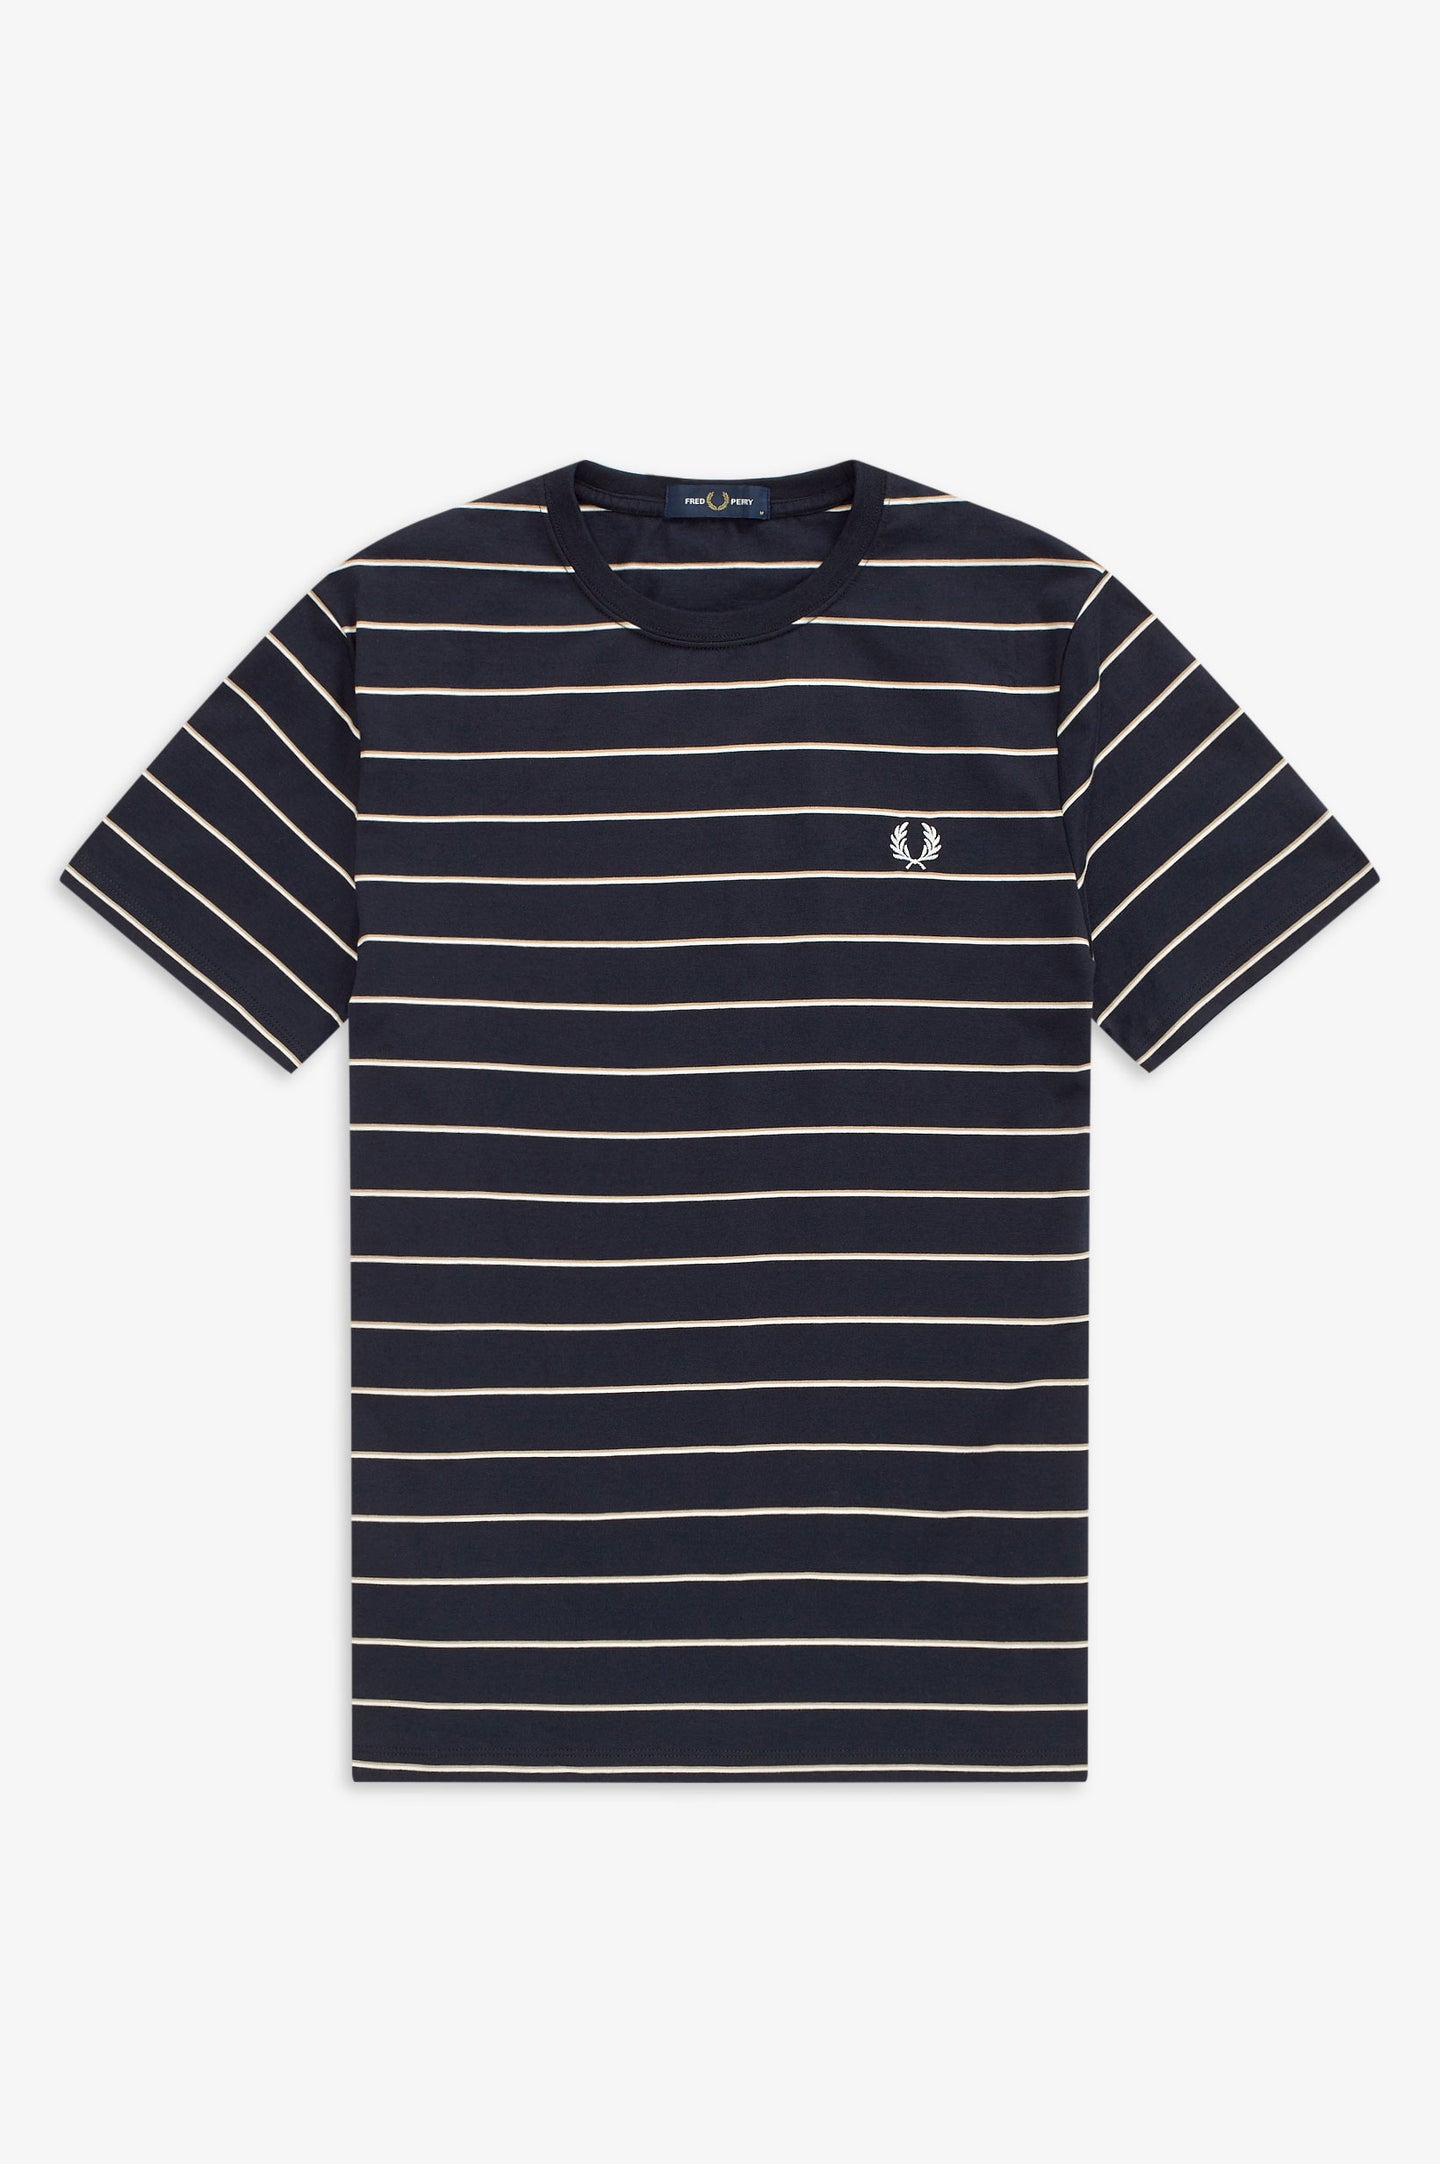 FRED PERRY - T-SHIRT - 248 NAVY